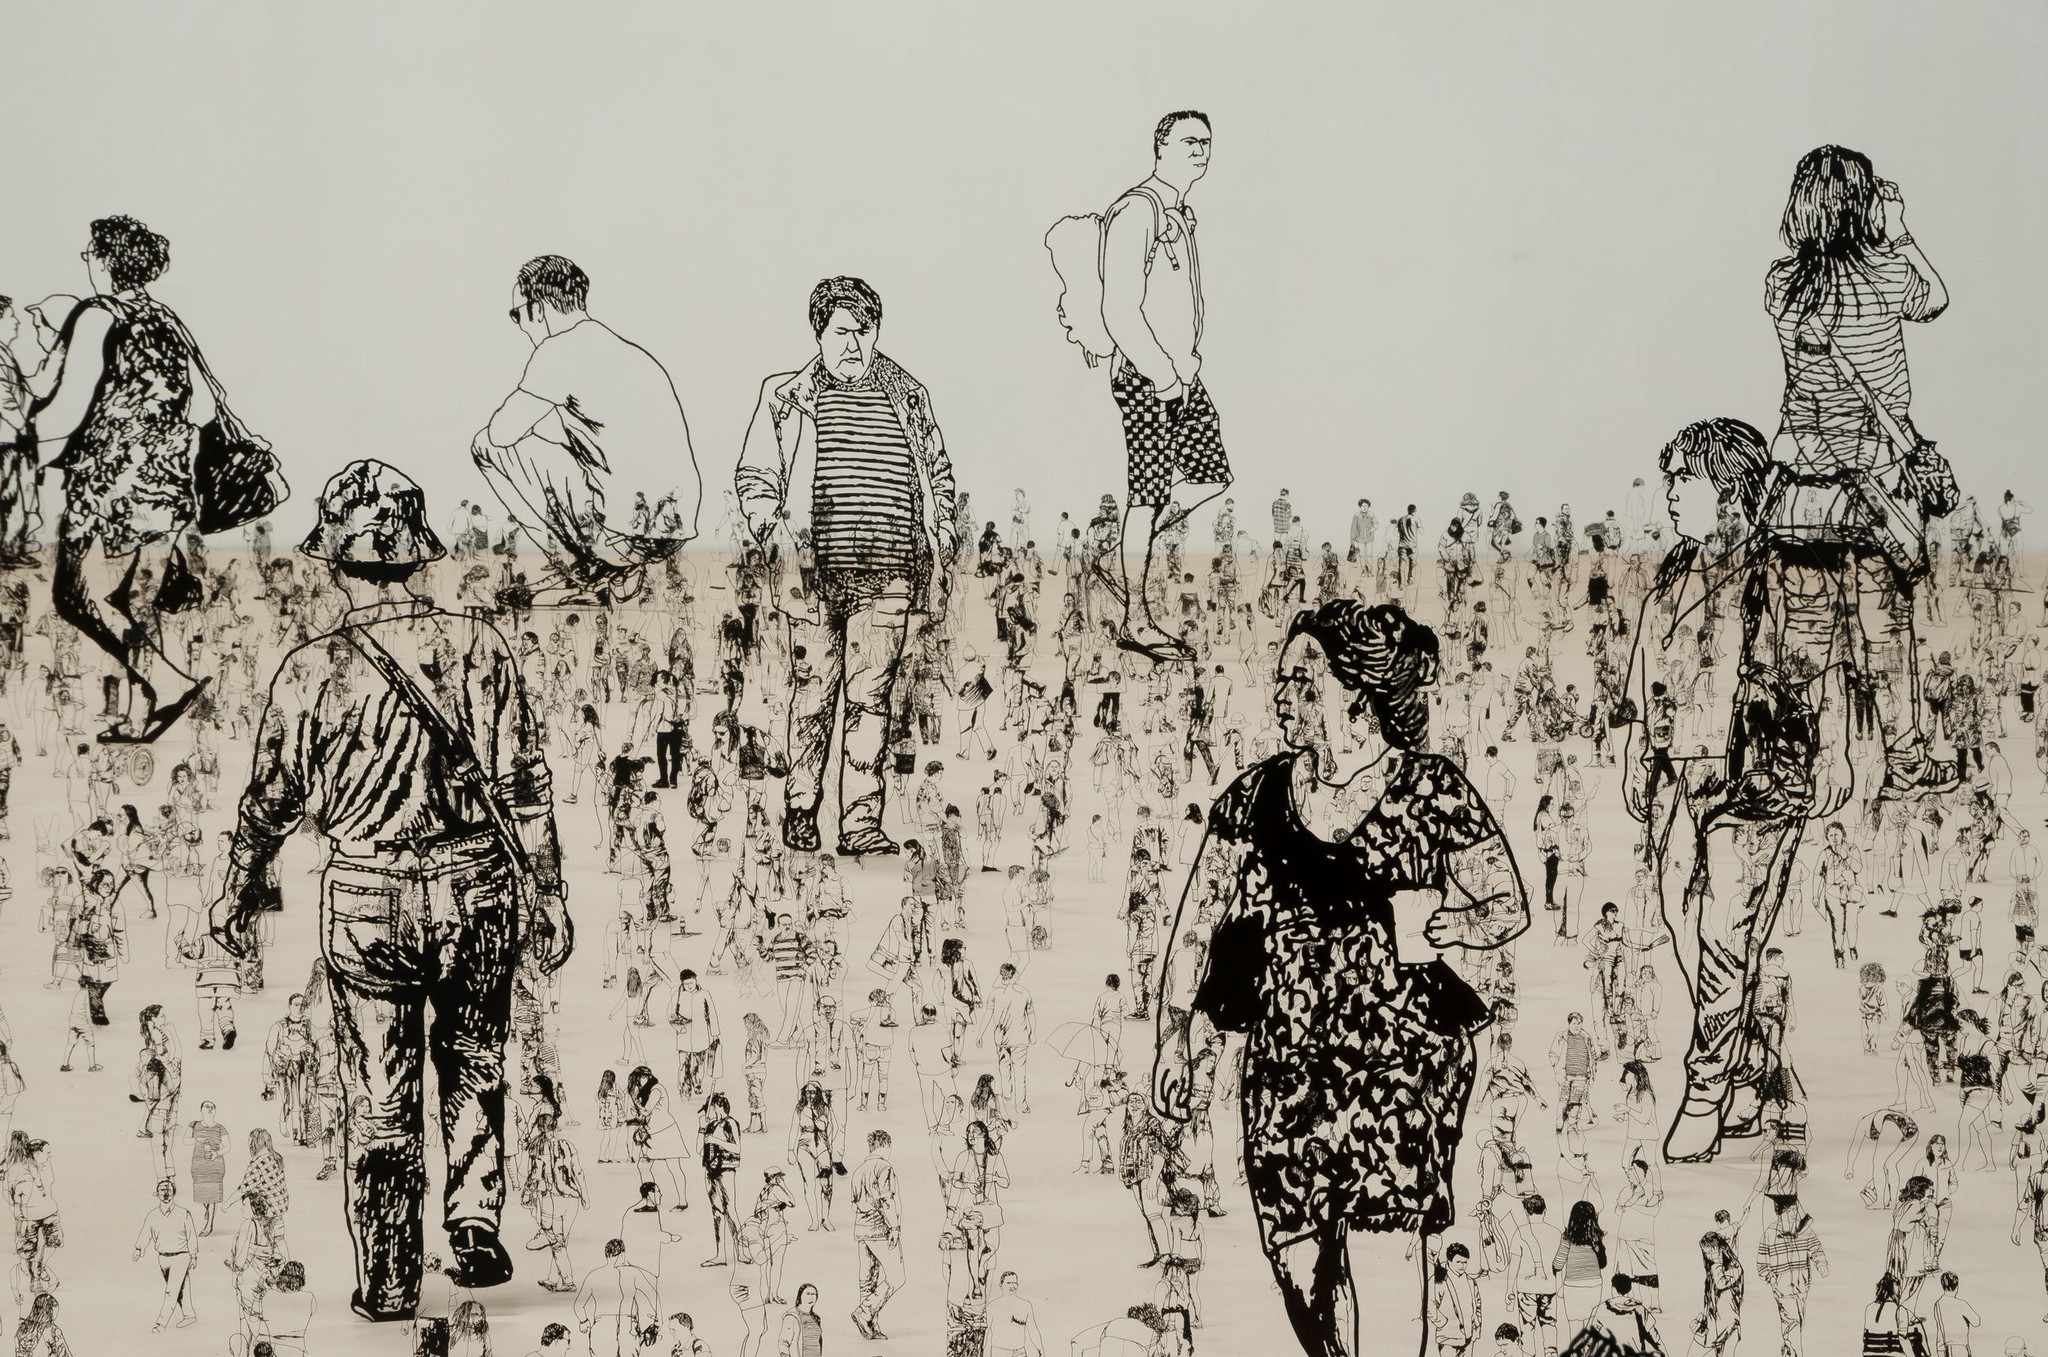 A detail of the 3,000 figures in Zadok Ben-David's installation.